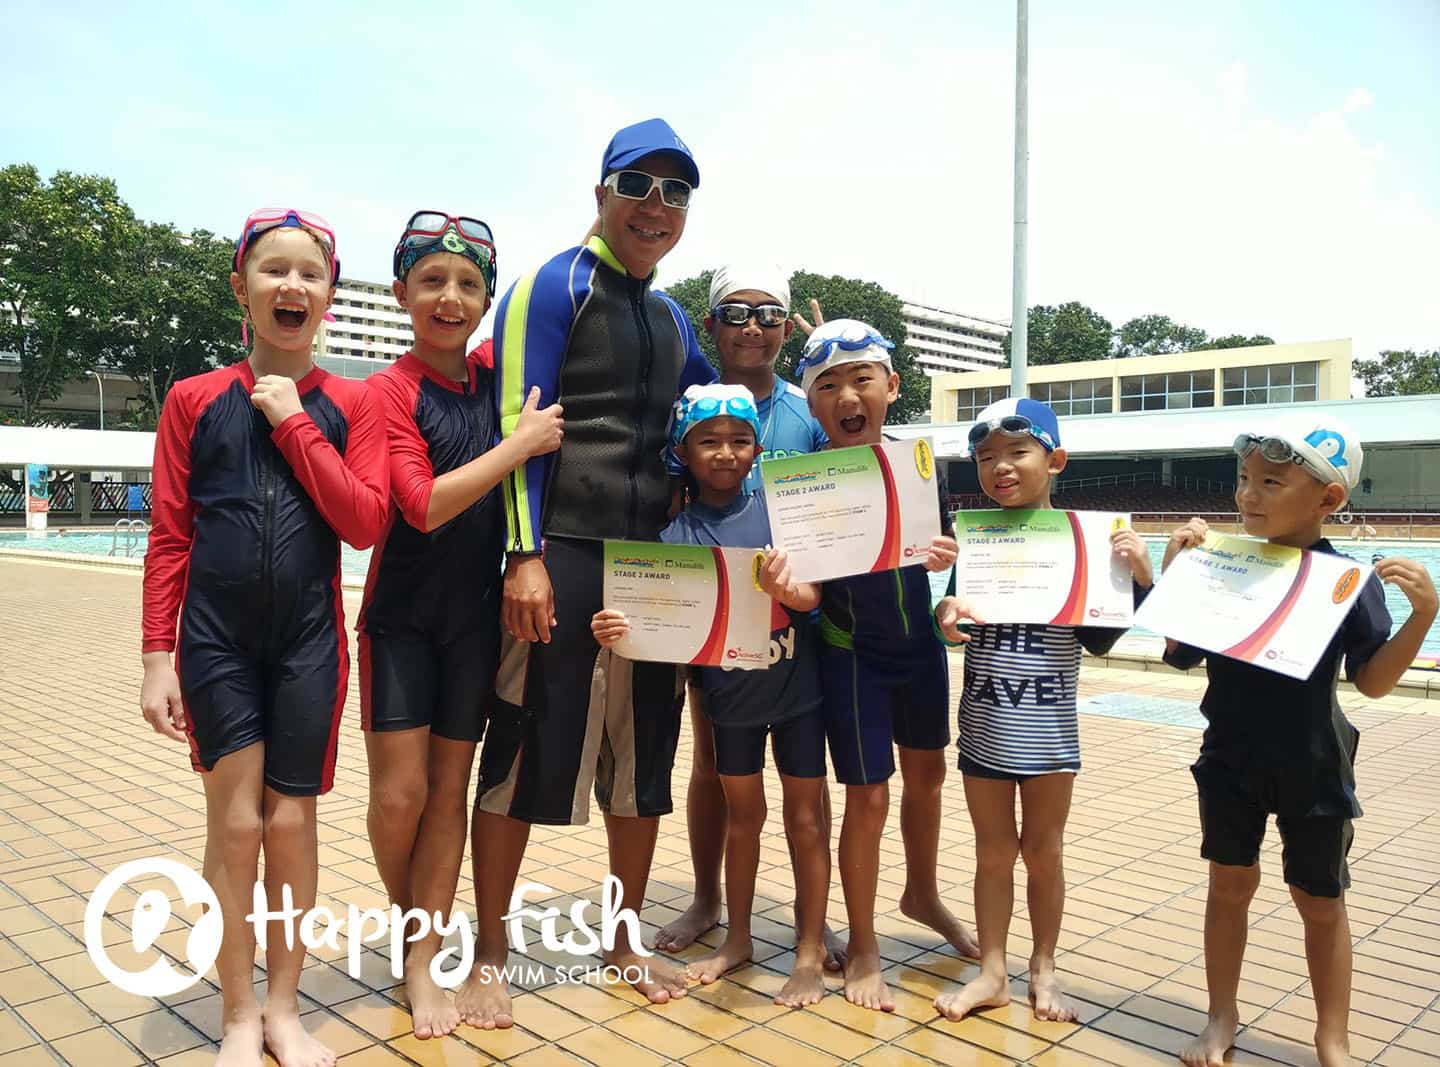 Swimming Lessons For Kids Singapore Happy Fish Swim School